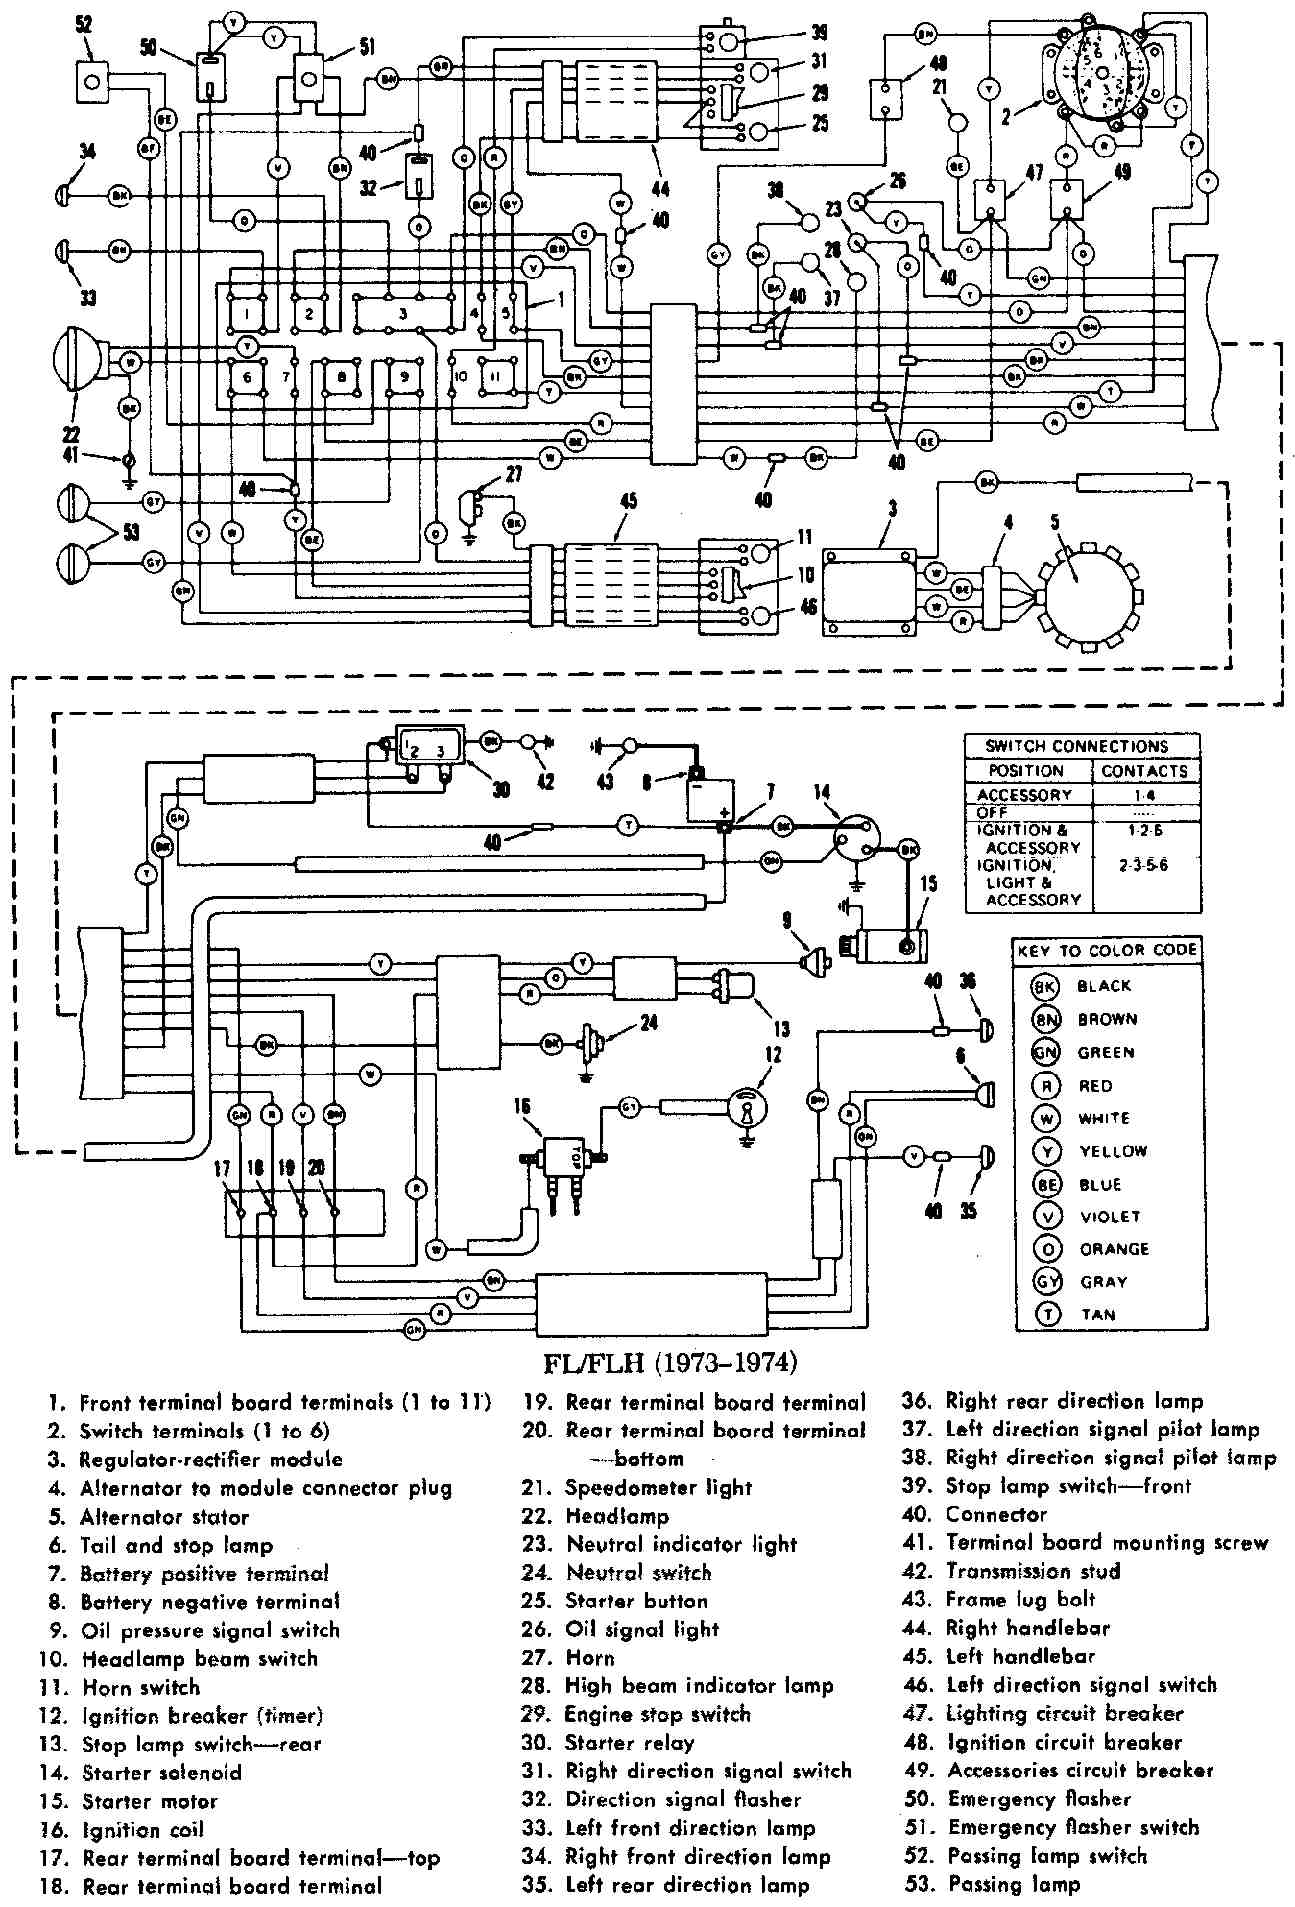 Amc Voltage Regulator Wiring Diagram as well 1972 Amc Javelin Wiring Diagram further Ford Duraspark Ignition Wiring Diagram likewise Ace Wiring Diagram in addition 1972 Chevelle Wiring Harness. on 1968 amx wiring diagram